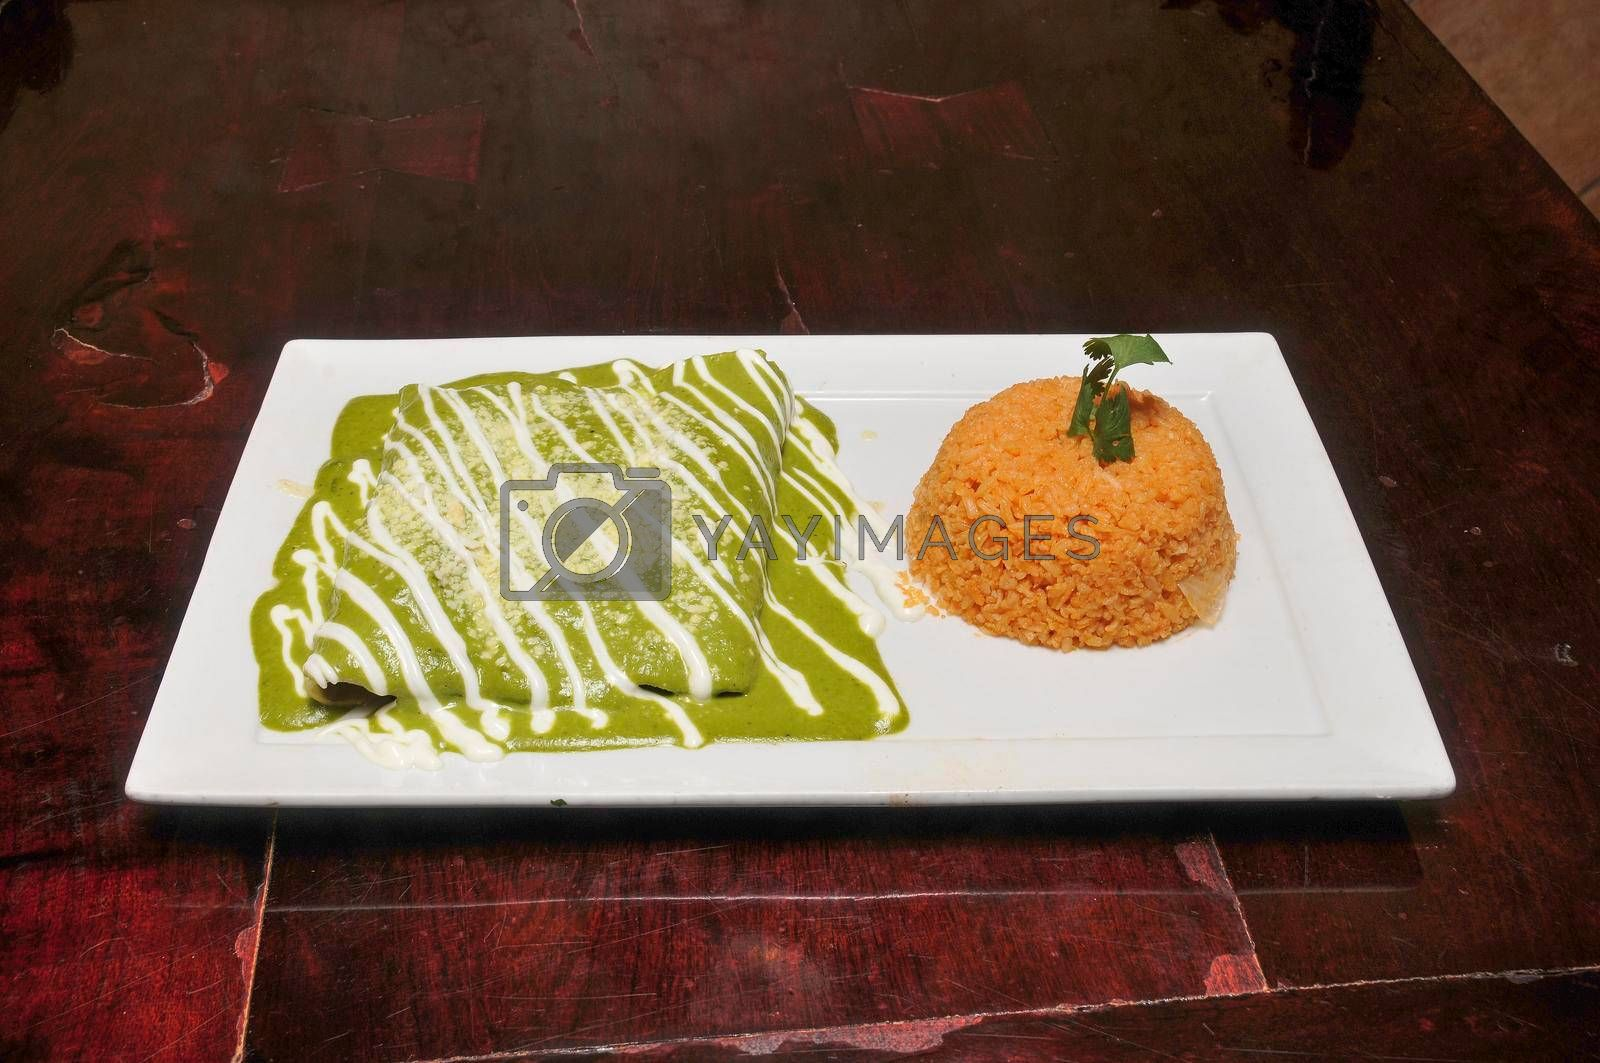 Authentic traditional Mexican cuisine dish known as Green Enchiladas